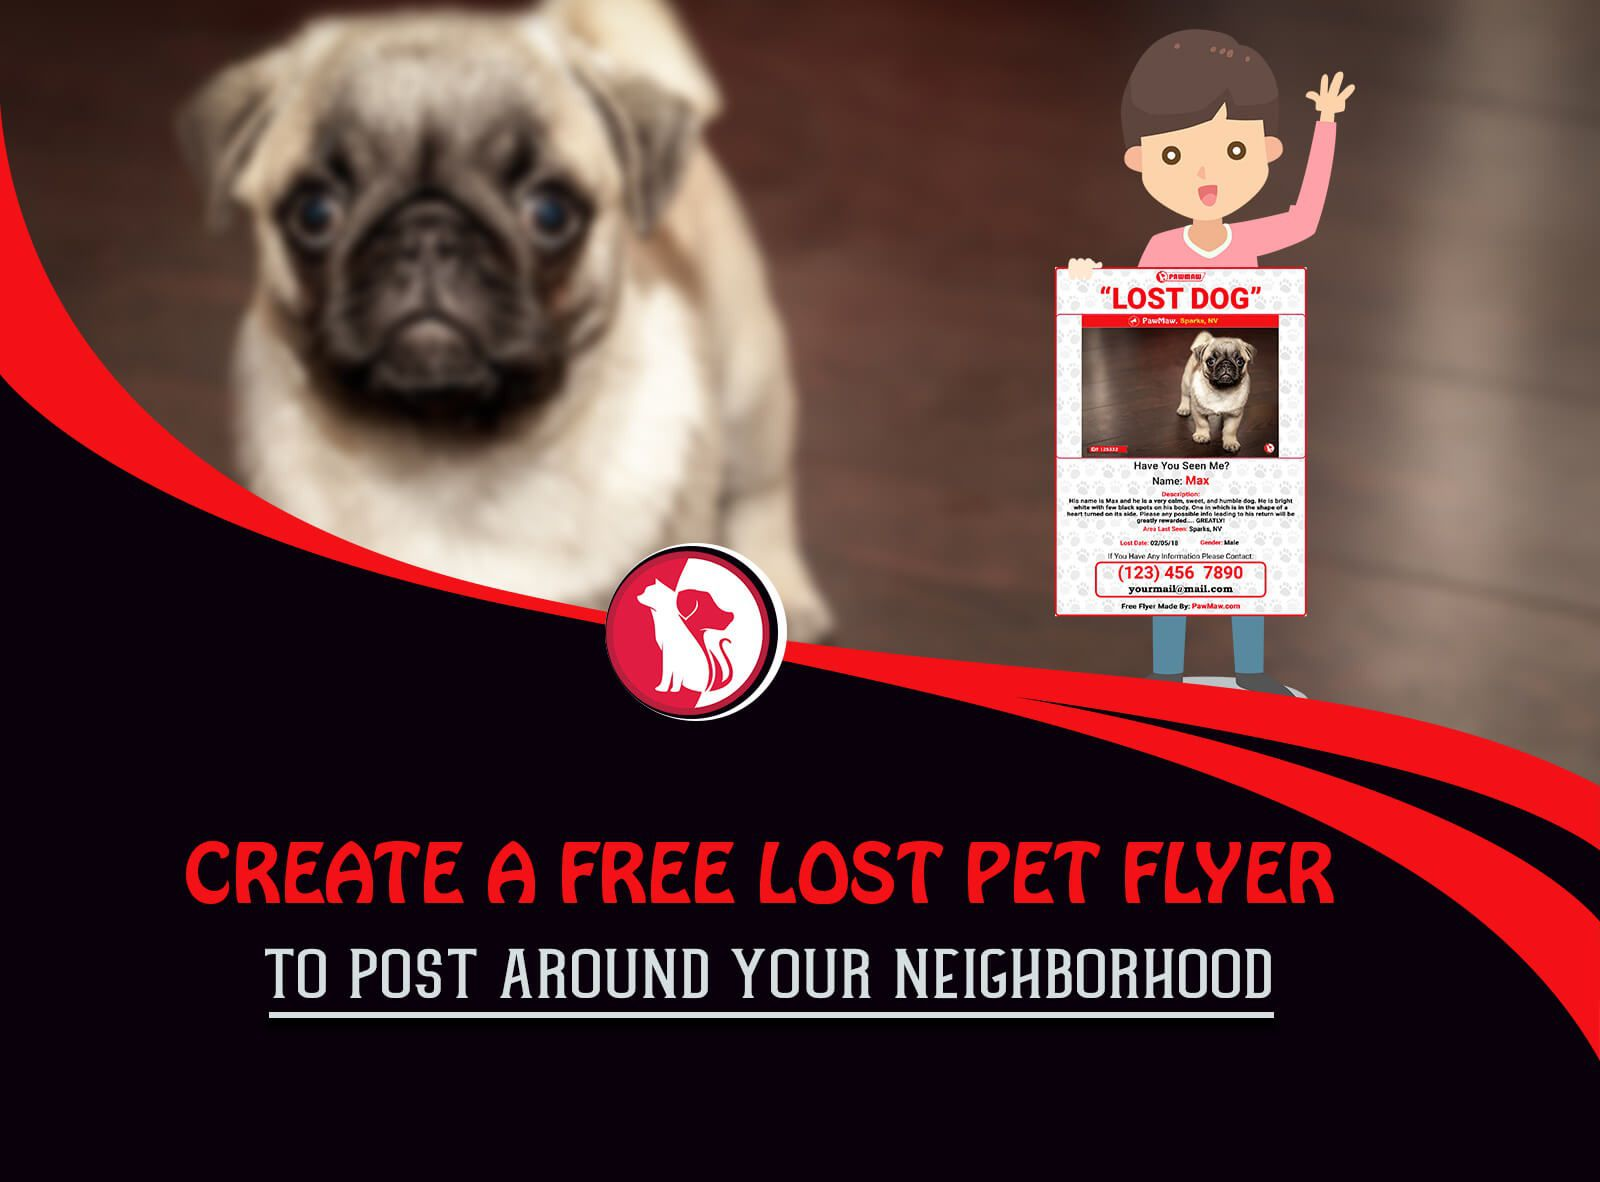 000 Imposing Missing Dog Flyer Template Idea  Lost PosterFull